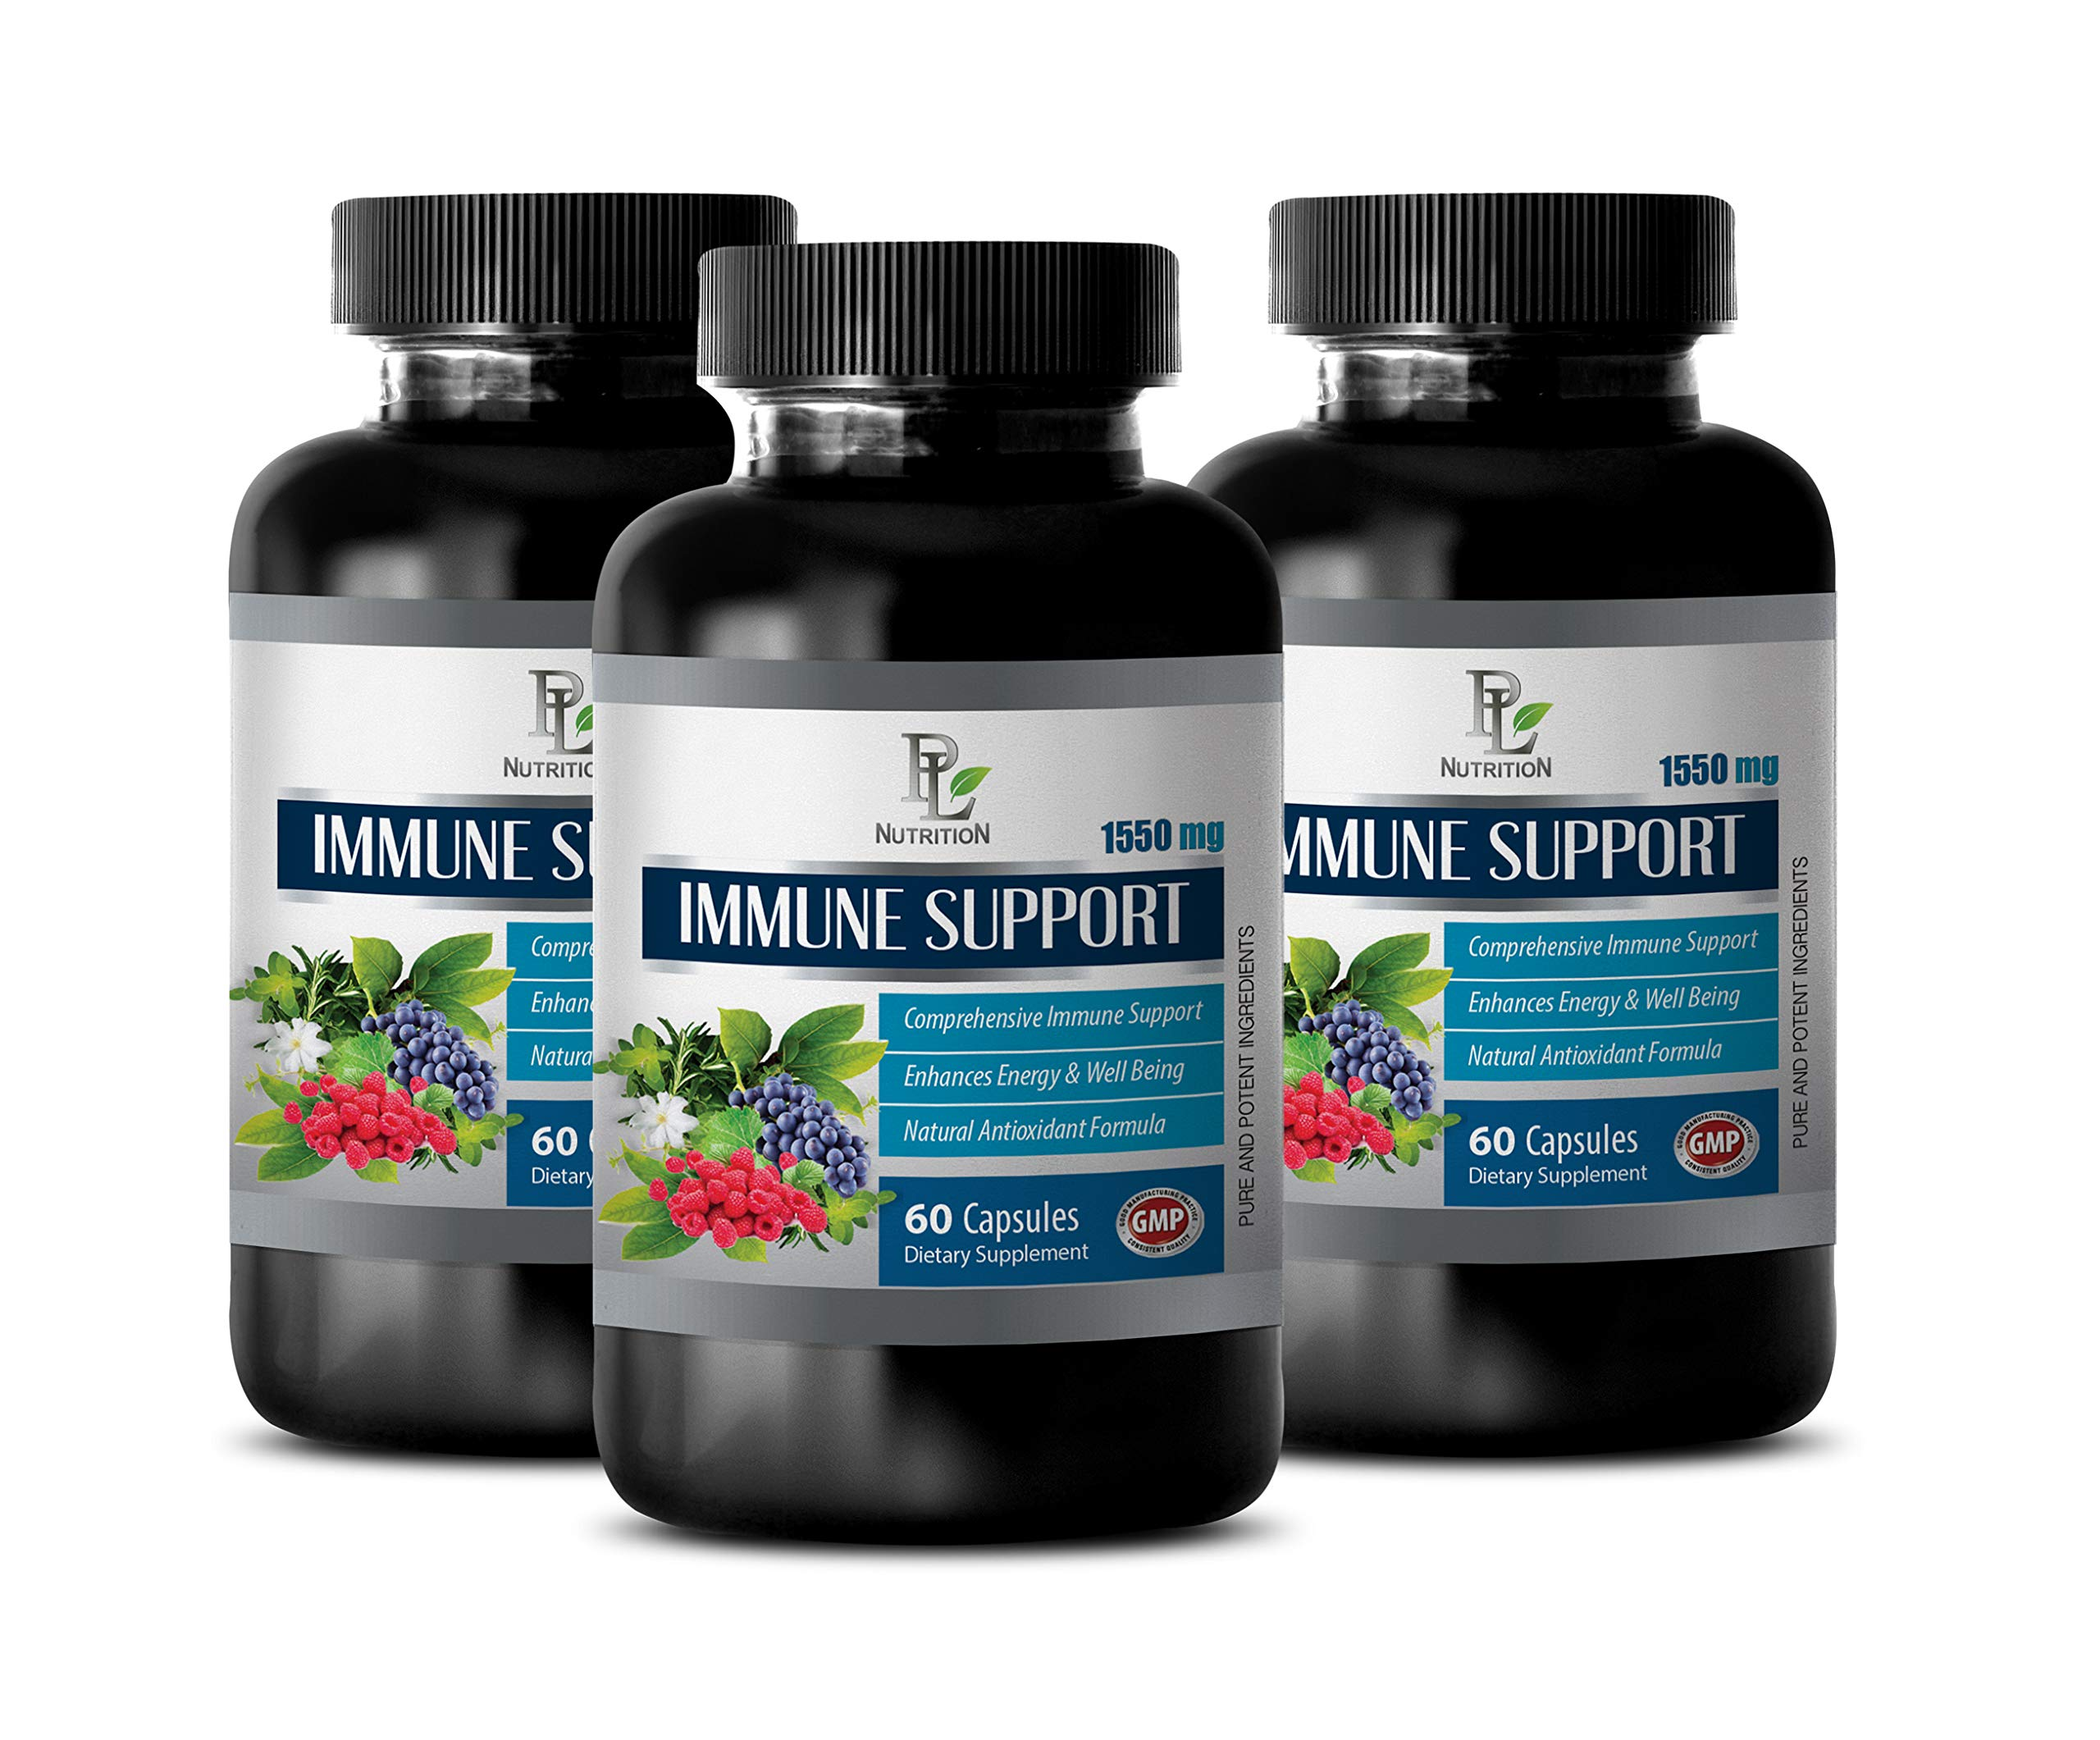 Immune Nutrition - Natural Immune Support Complex 1550MG - Powerful ANTIOXIDANTS - Best Herbs - Green Tea Vitamins - 3 Bottles (180 Capsules) by PL NUTRITION